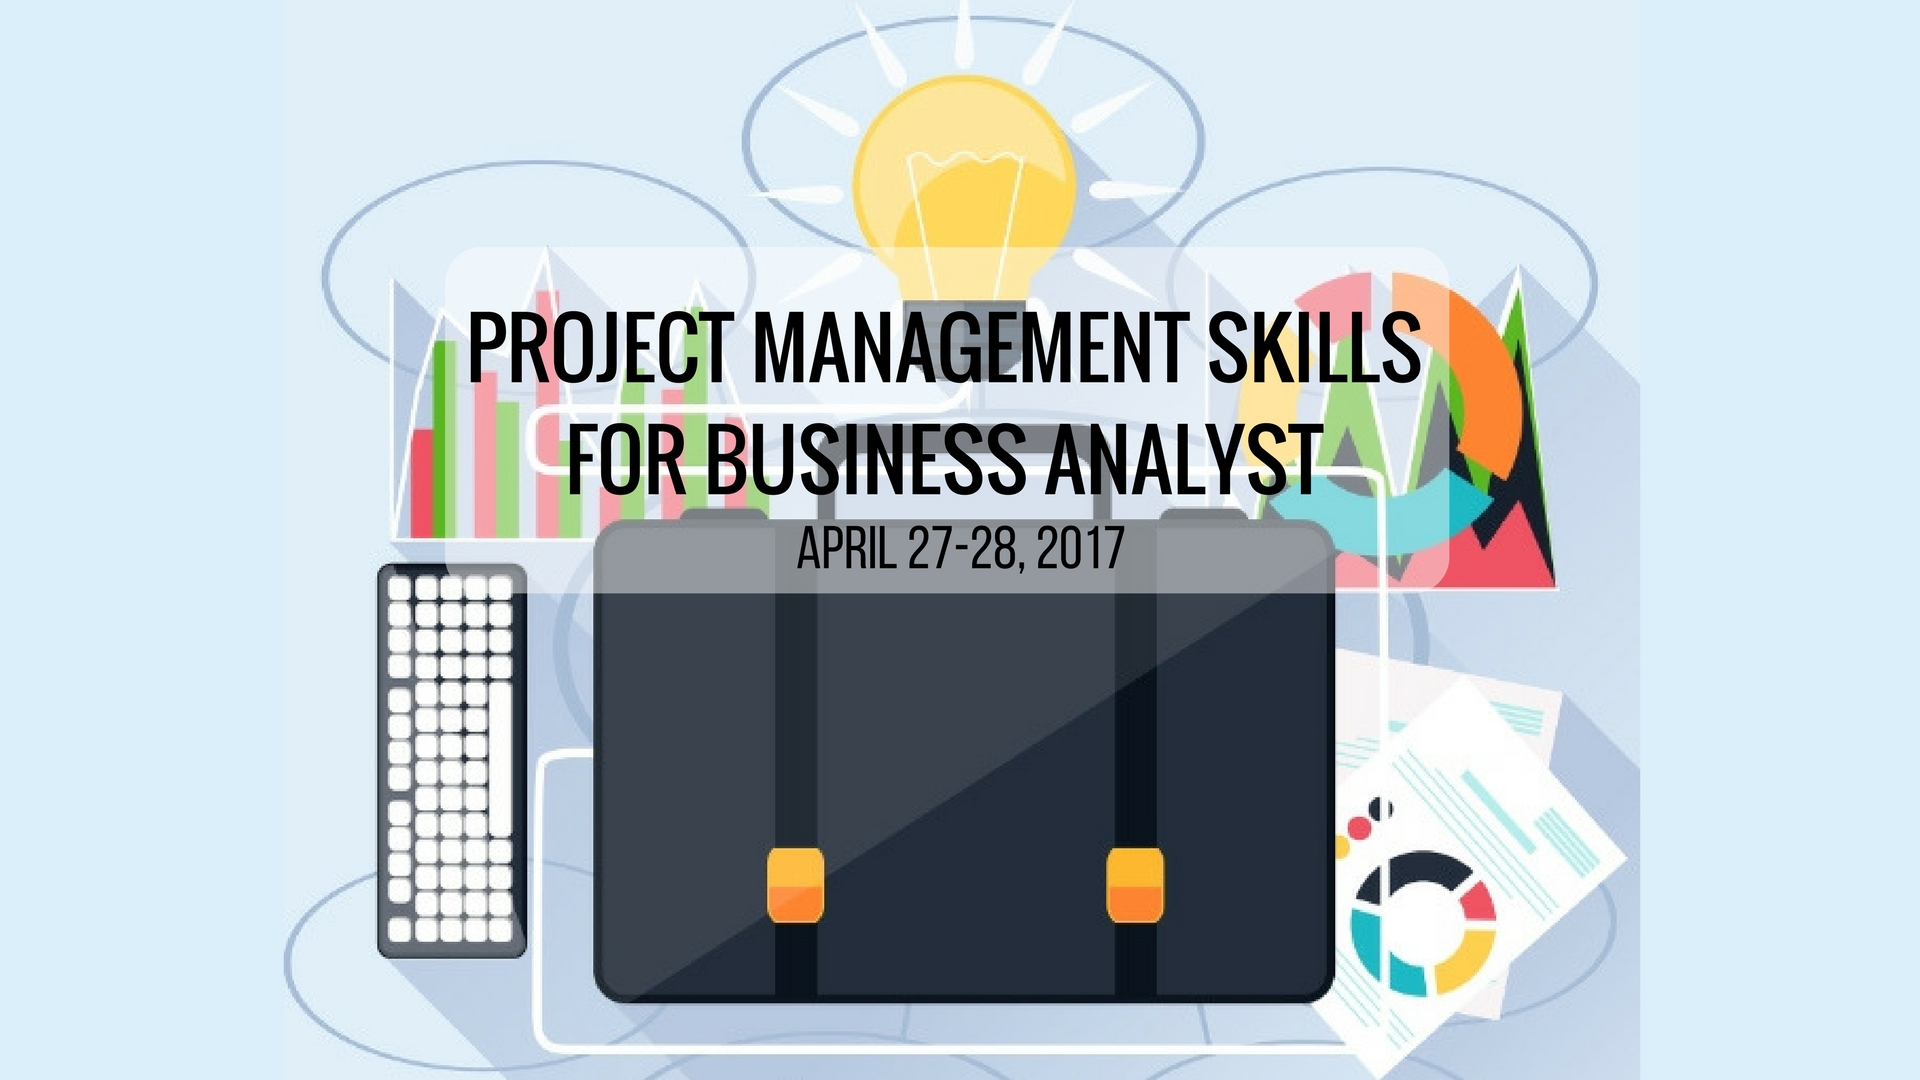 Project Management Skills For Business Analyst